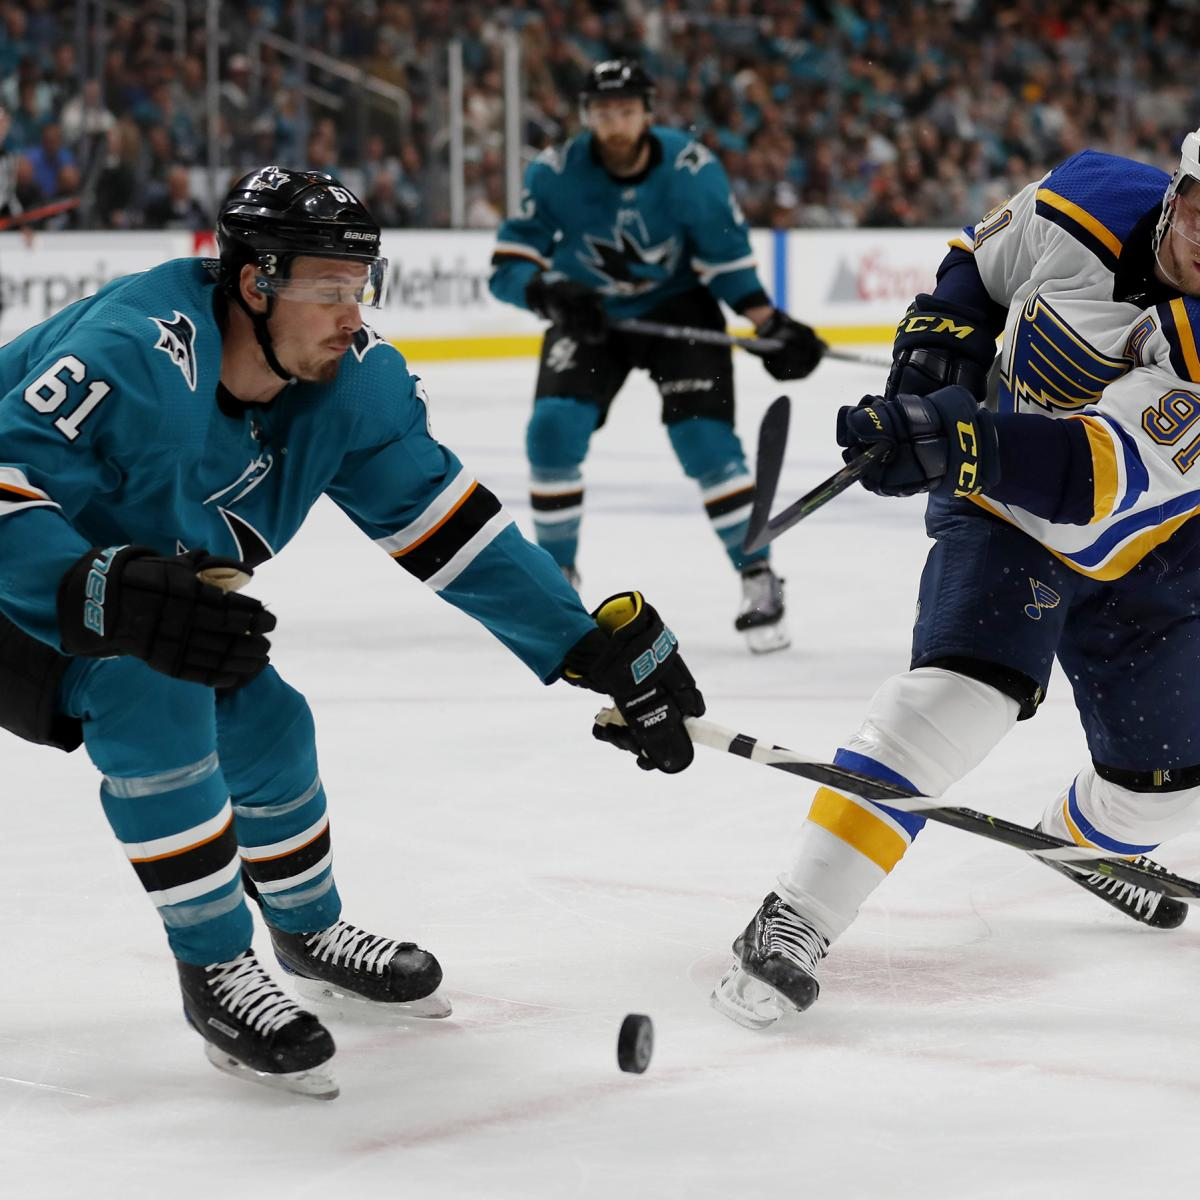 NHL Playoffs 2019: Conference Finals TV Schedule And